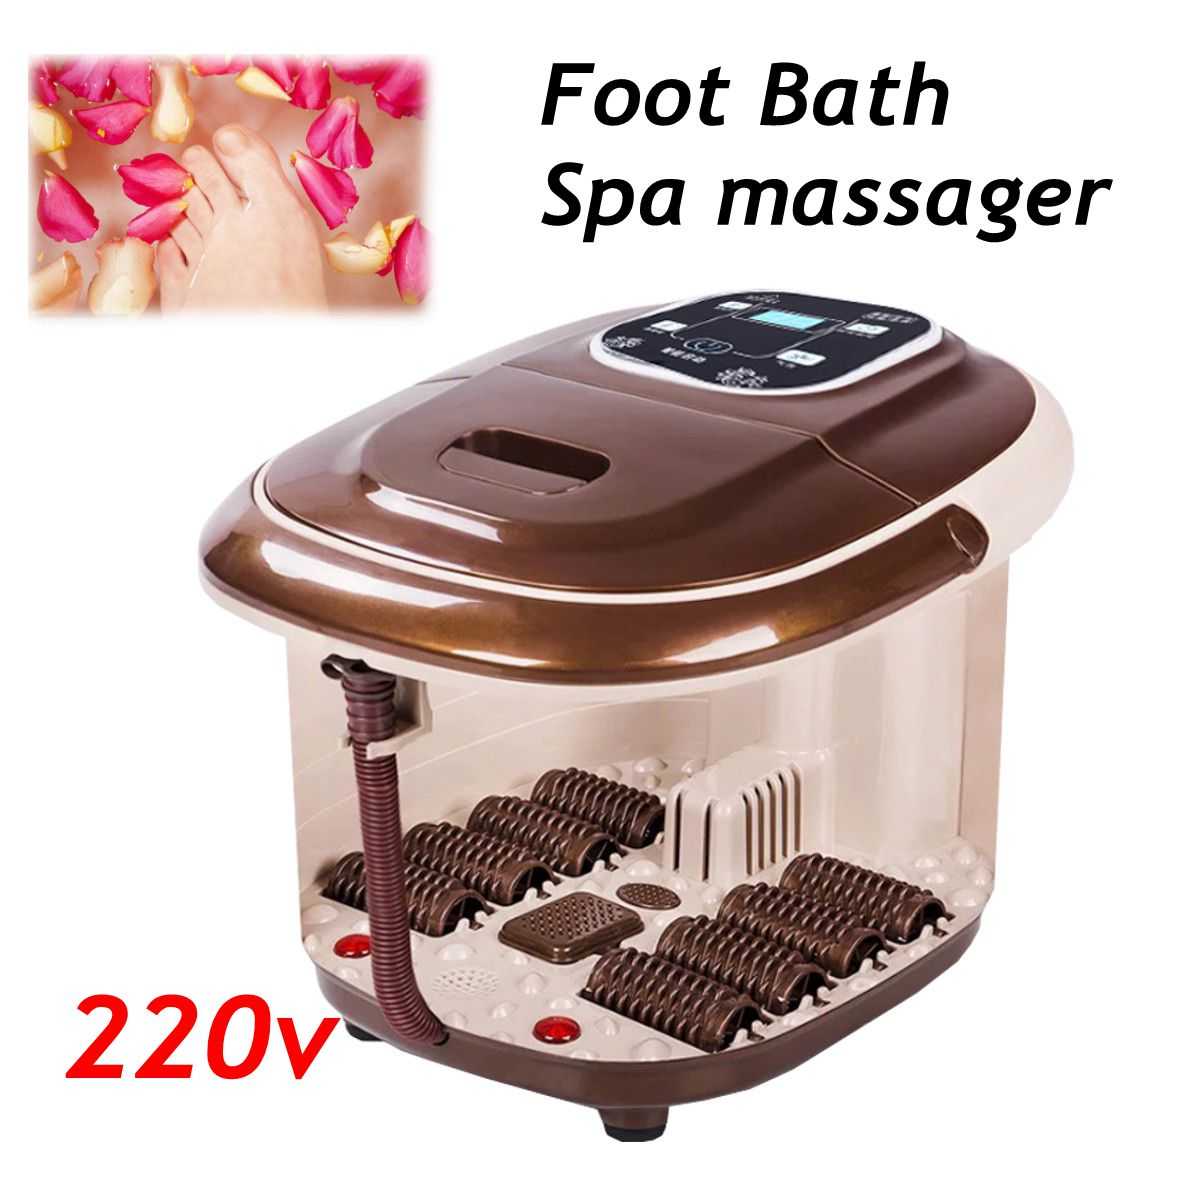 Foot Bath Spa Infrared Therapy Massager Flame Retardant